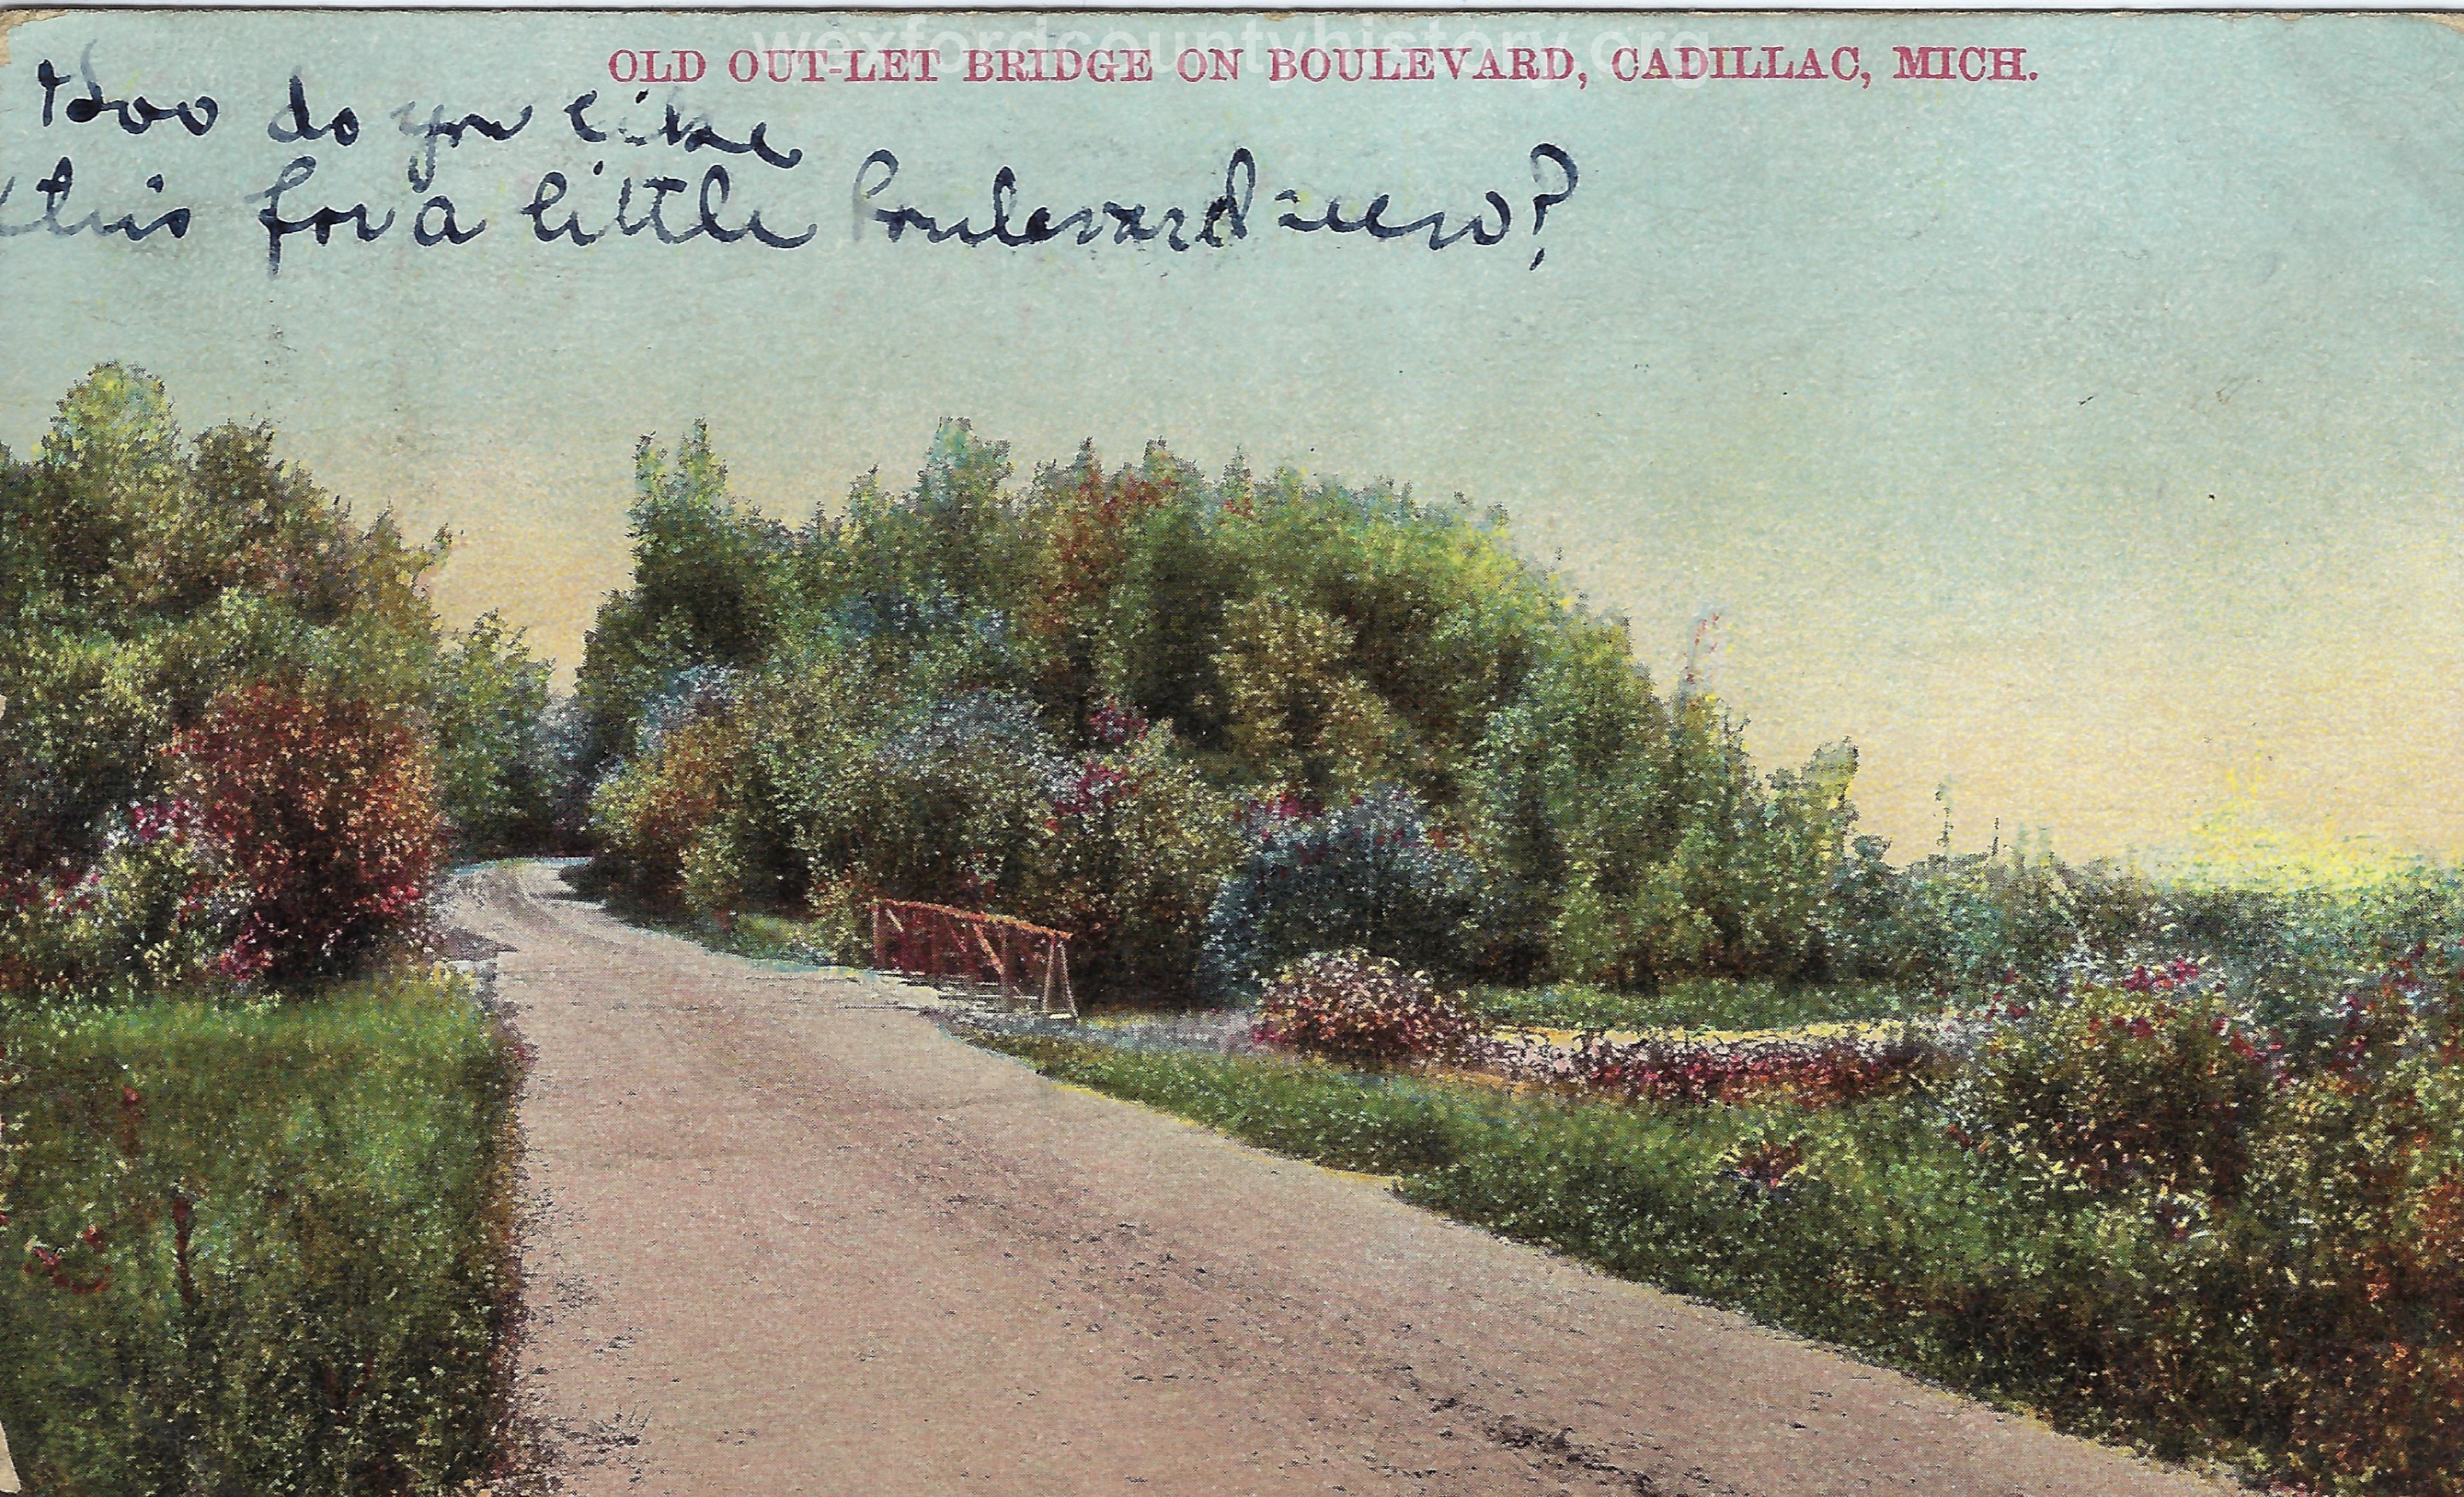 Cadillac-Recreation-Old-Outlet-Bridge-The-North-Boulevard-roadway-was-constructed-by-the-Mitchell-family.-This-1907-or-earlier.-photo-was-taken-approaching-the-Black-Creek-3